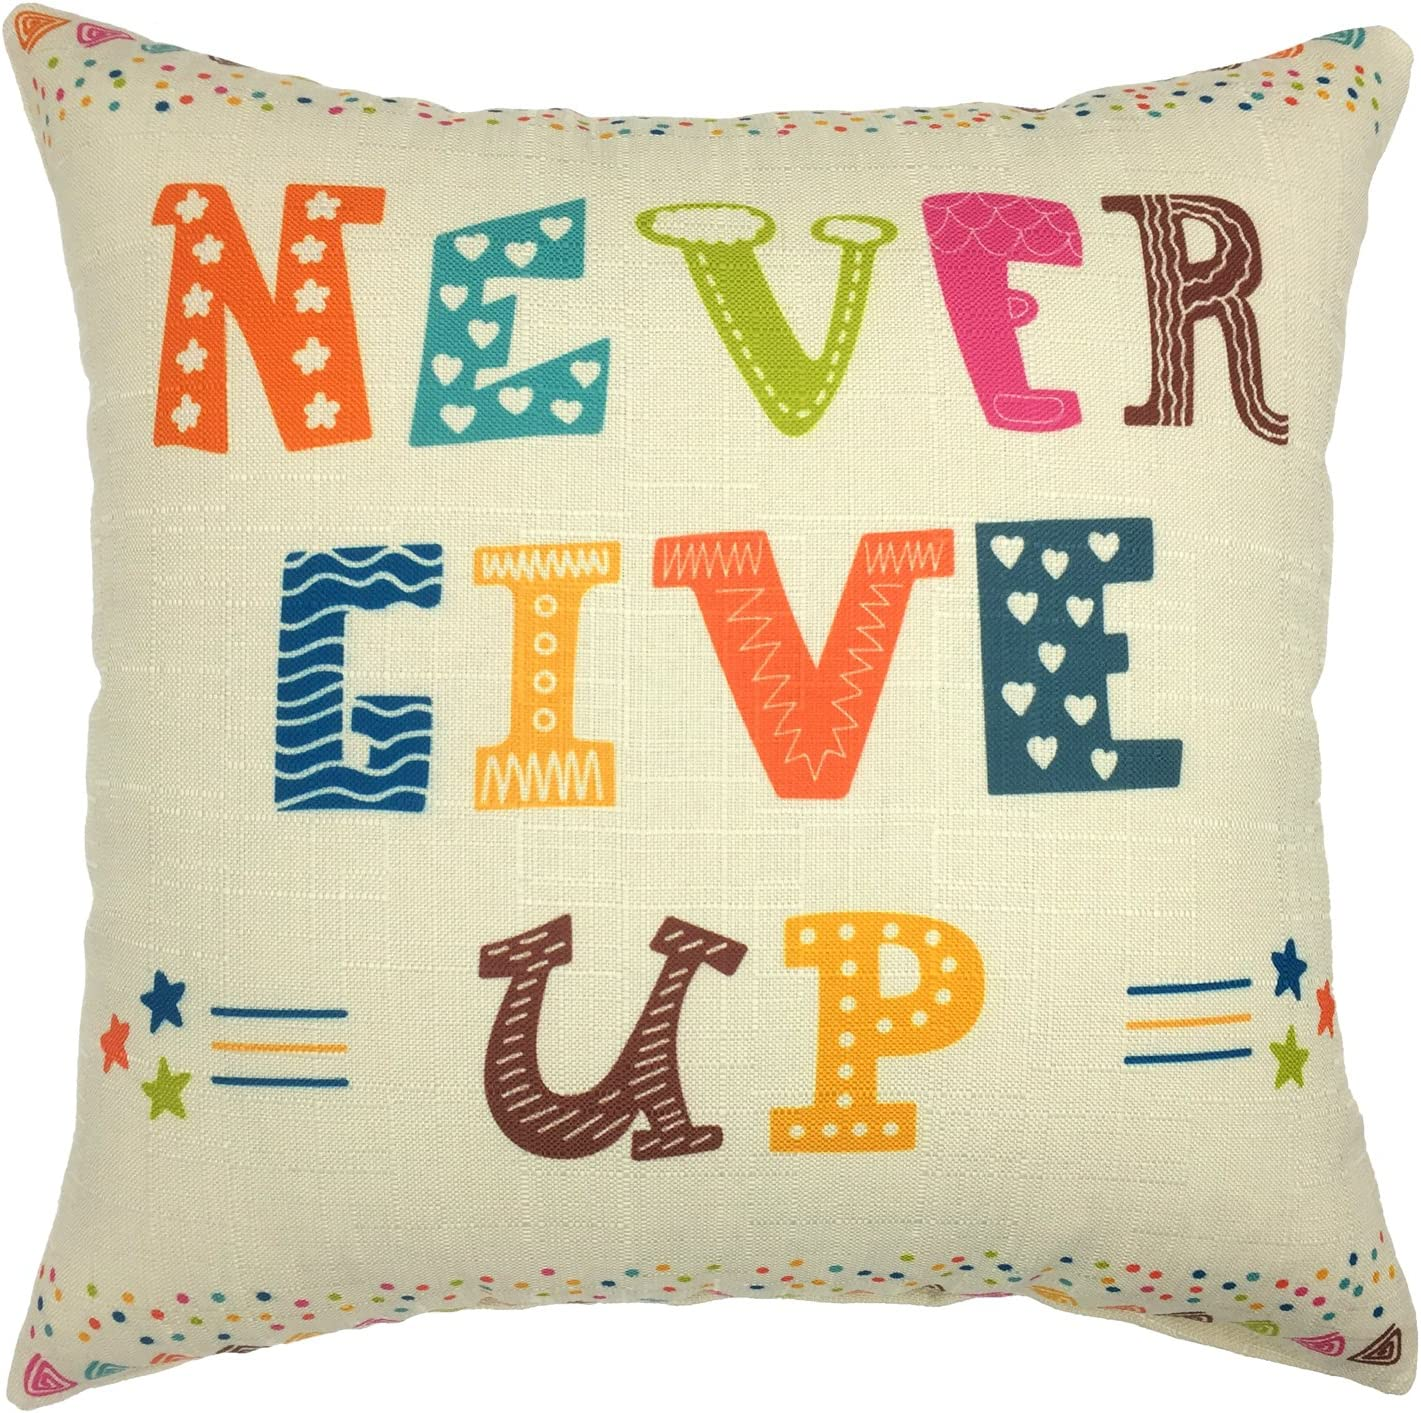 Your Smile Inspiring Quote Cotton Linen Square Decorative Throw Pillow Case Cushion Cover 18x18 Inch Home Kitchen